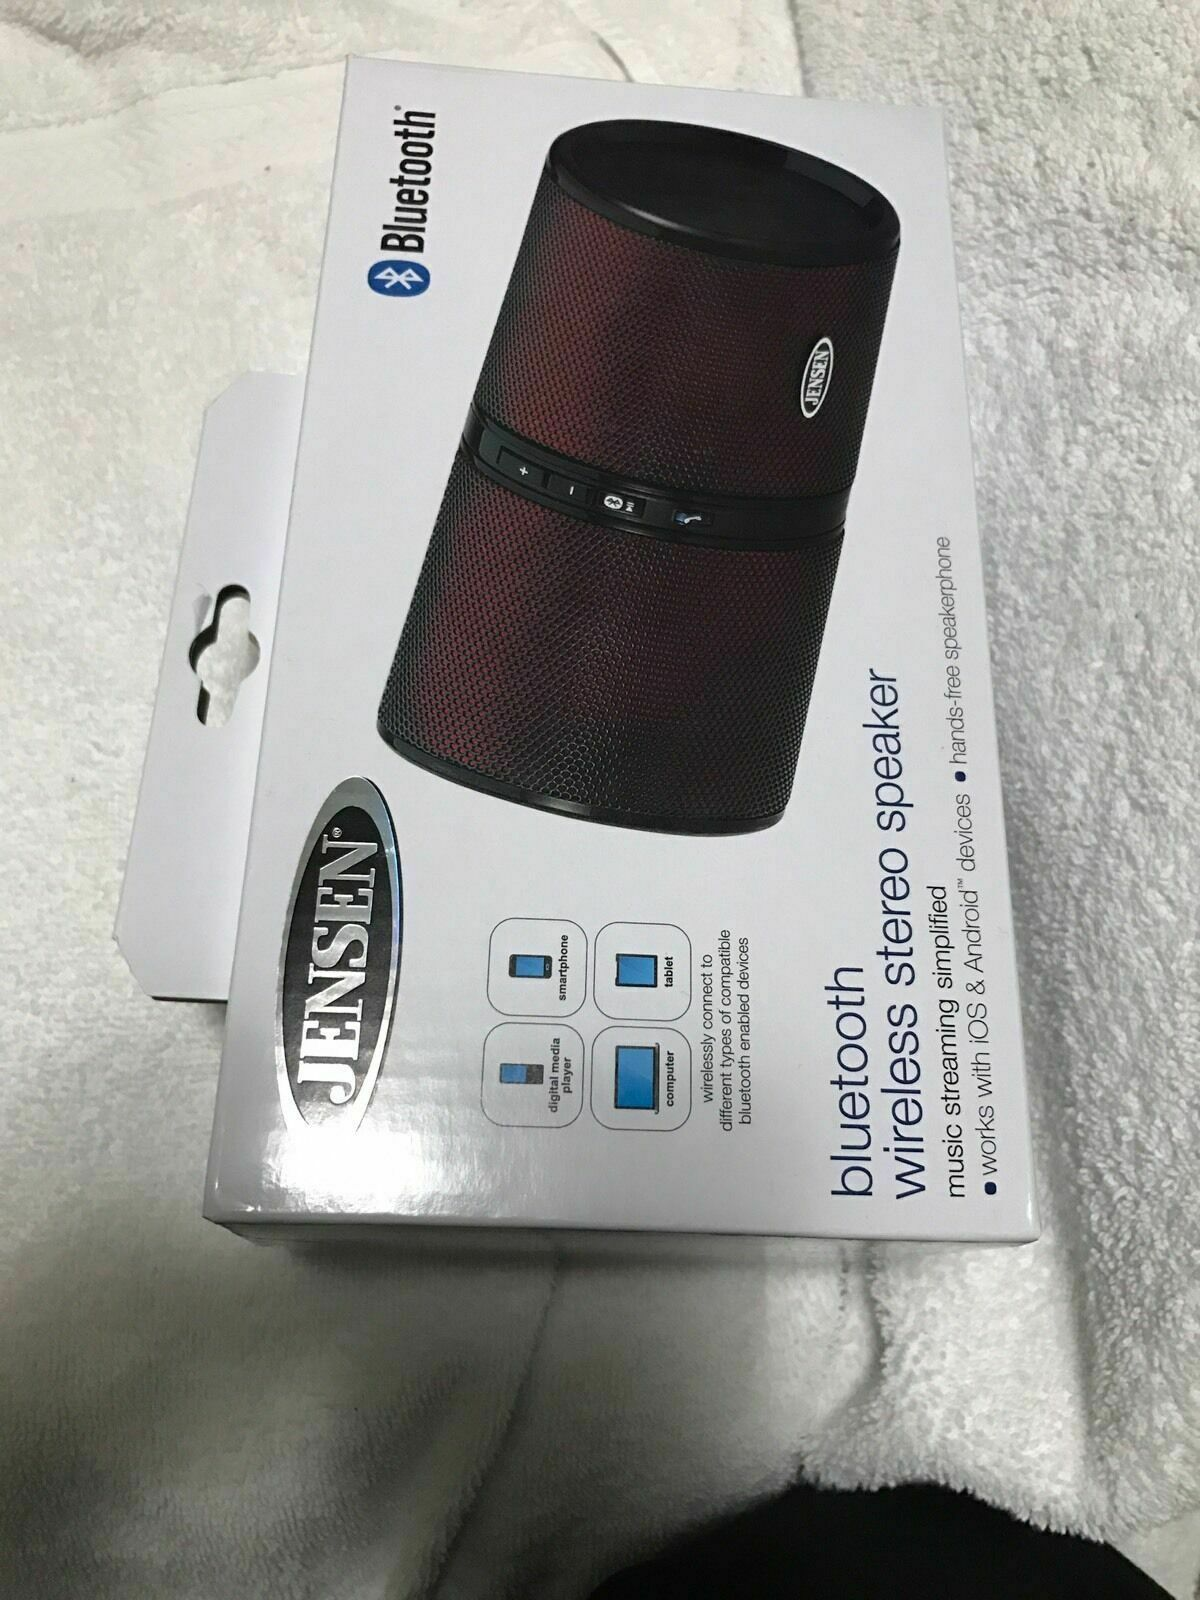 JENSEN Bluetooth Rechargeable Stereo Speaker (Red) SMPS622R Brand New In Box